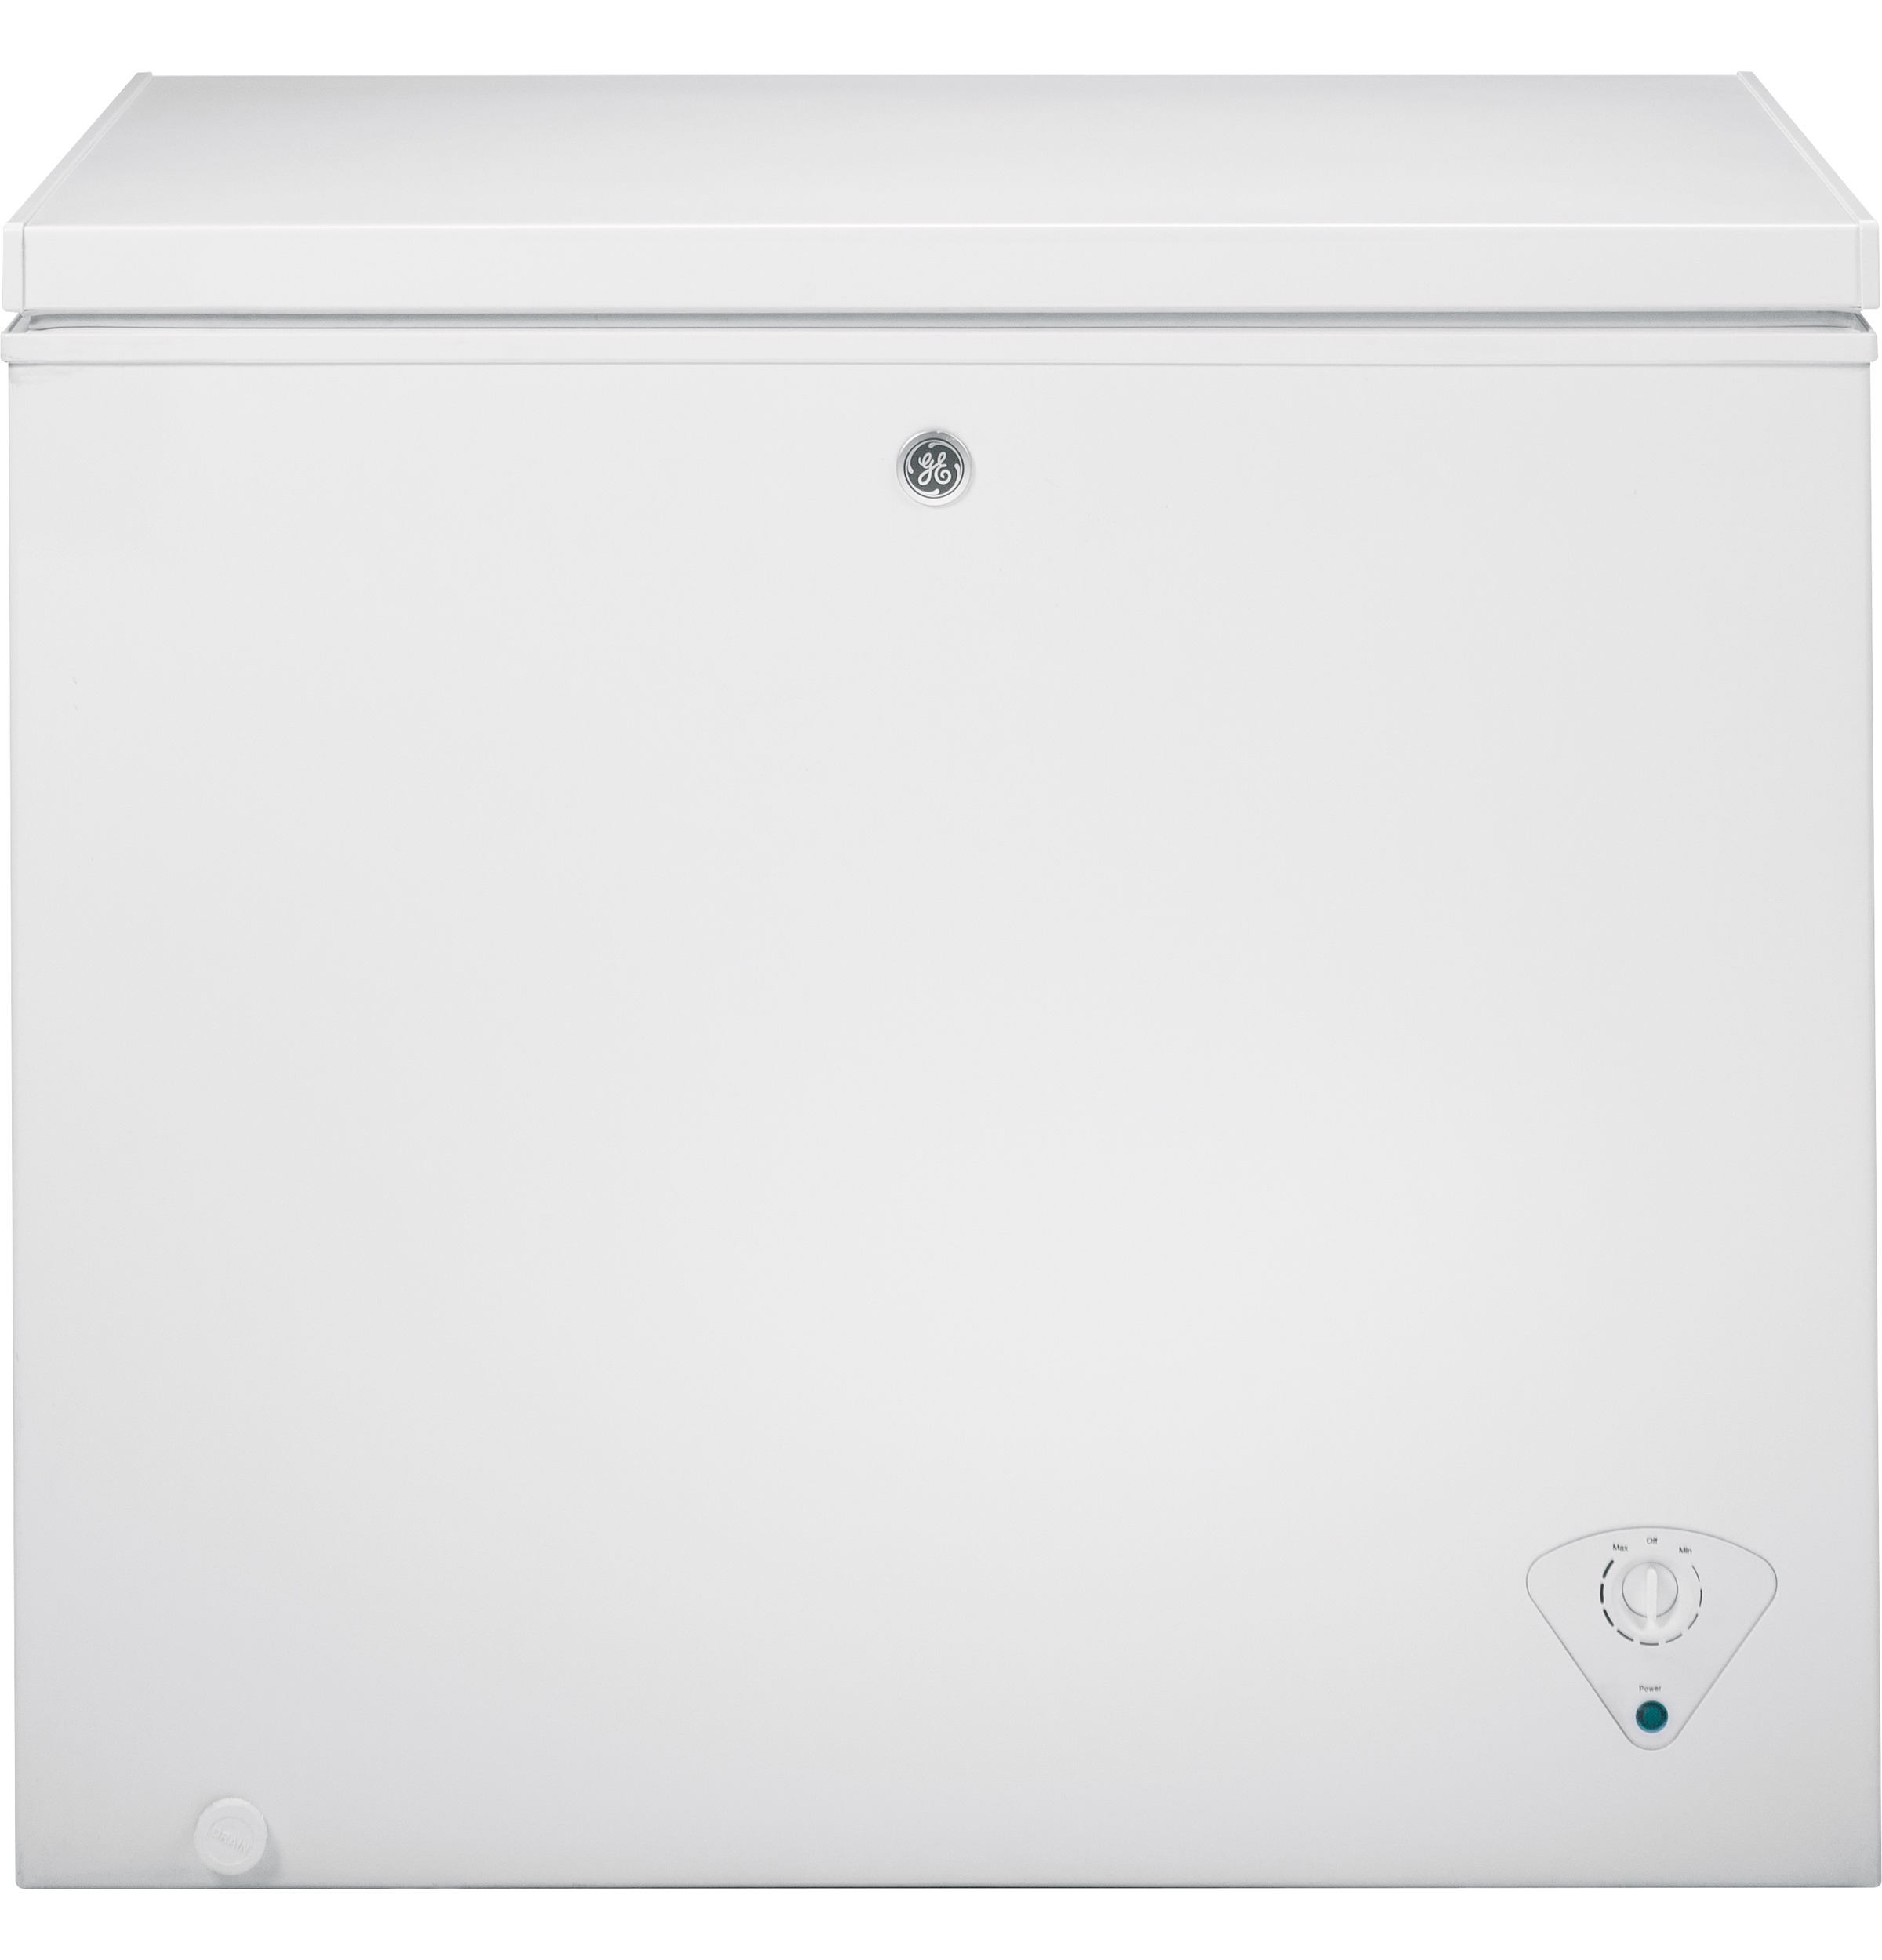 GE GE® 7.0 Cu. Ft. Manual Defrost Chest Freezer